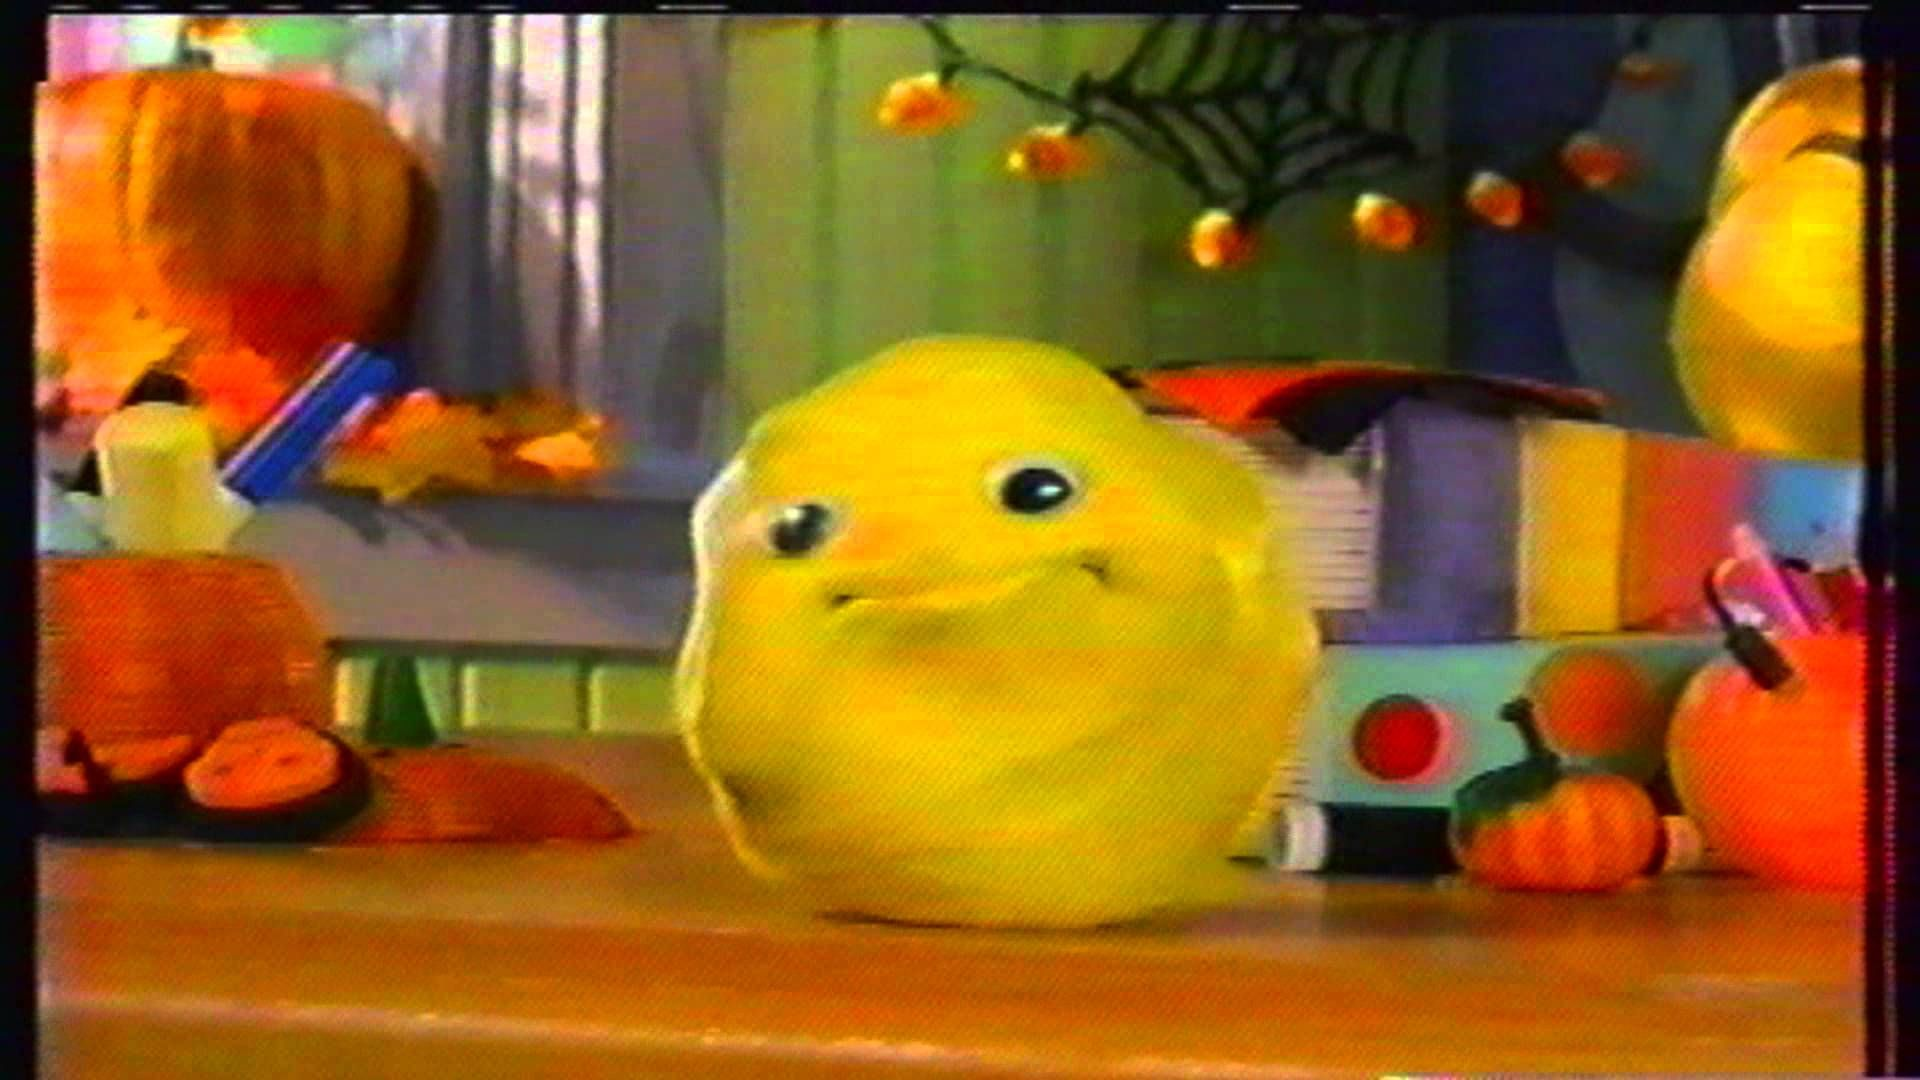 clay from playhouse disney i found it childhood